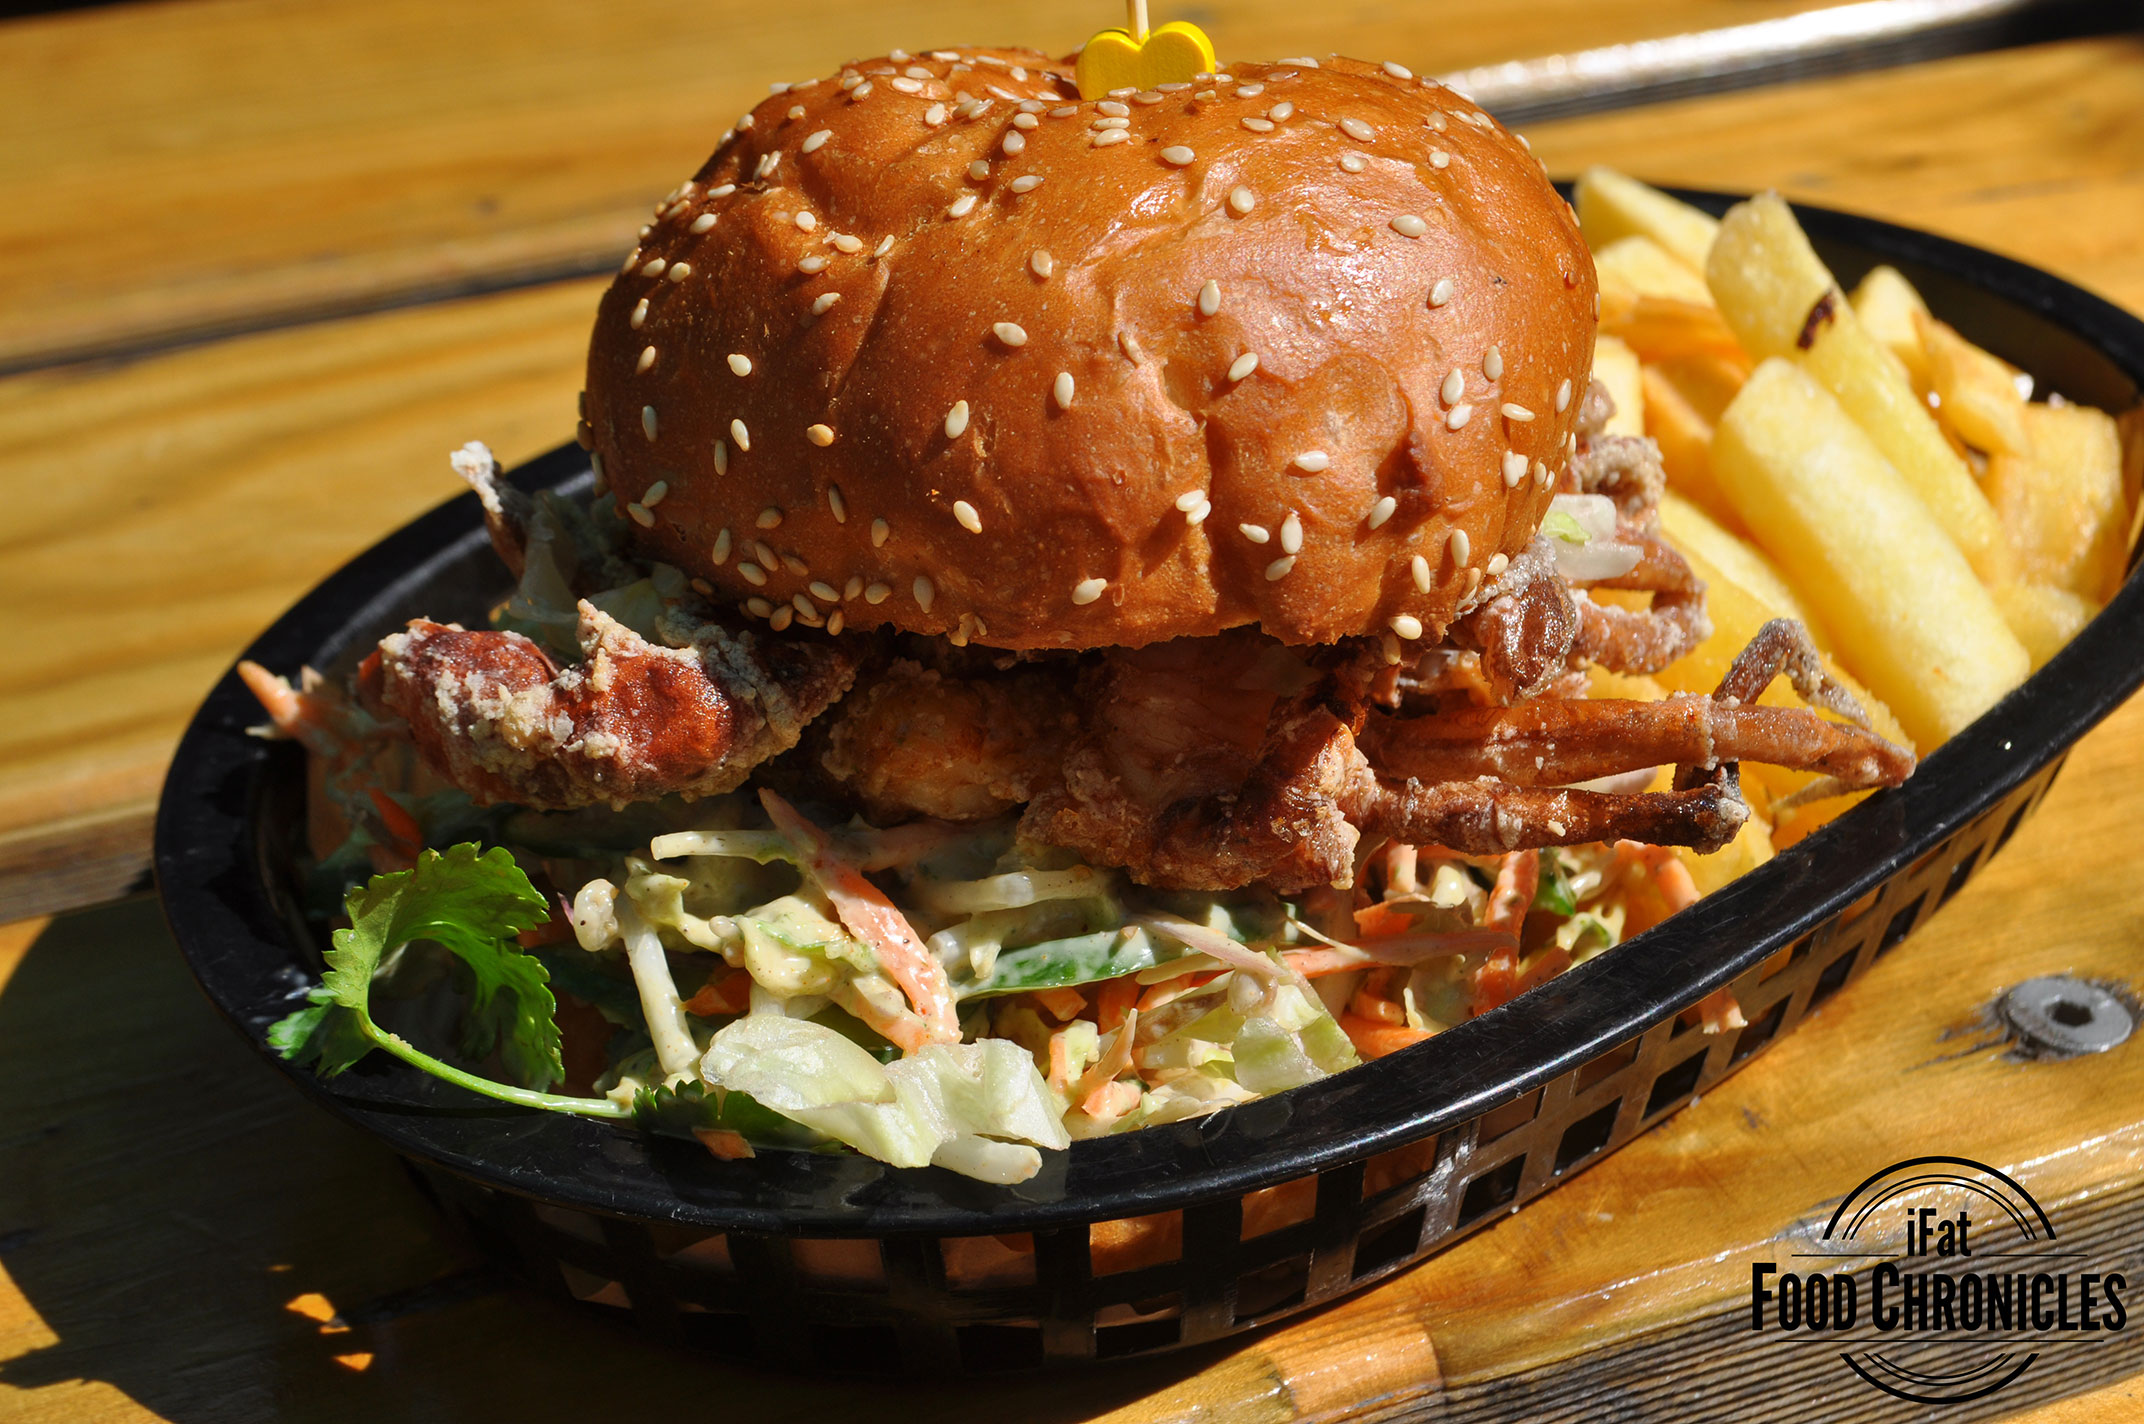 Soft shell crab burger with old bay coleslaw, ice-berg, sriarcha & chips